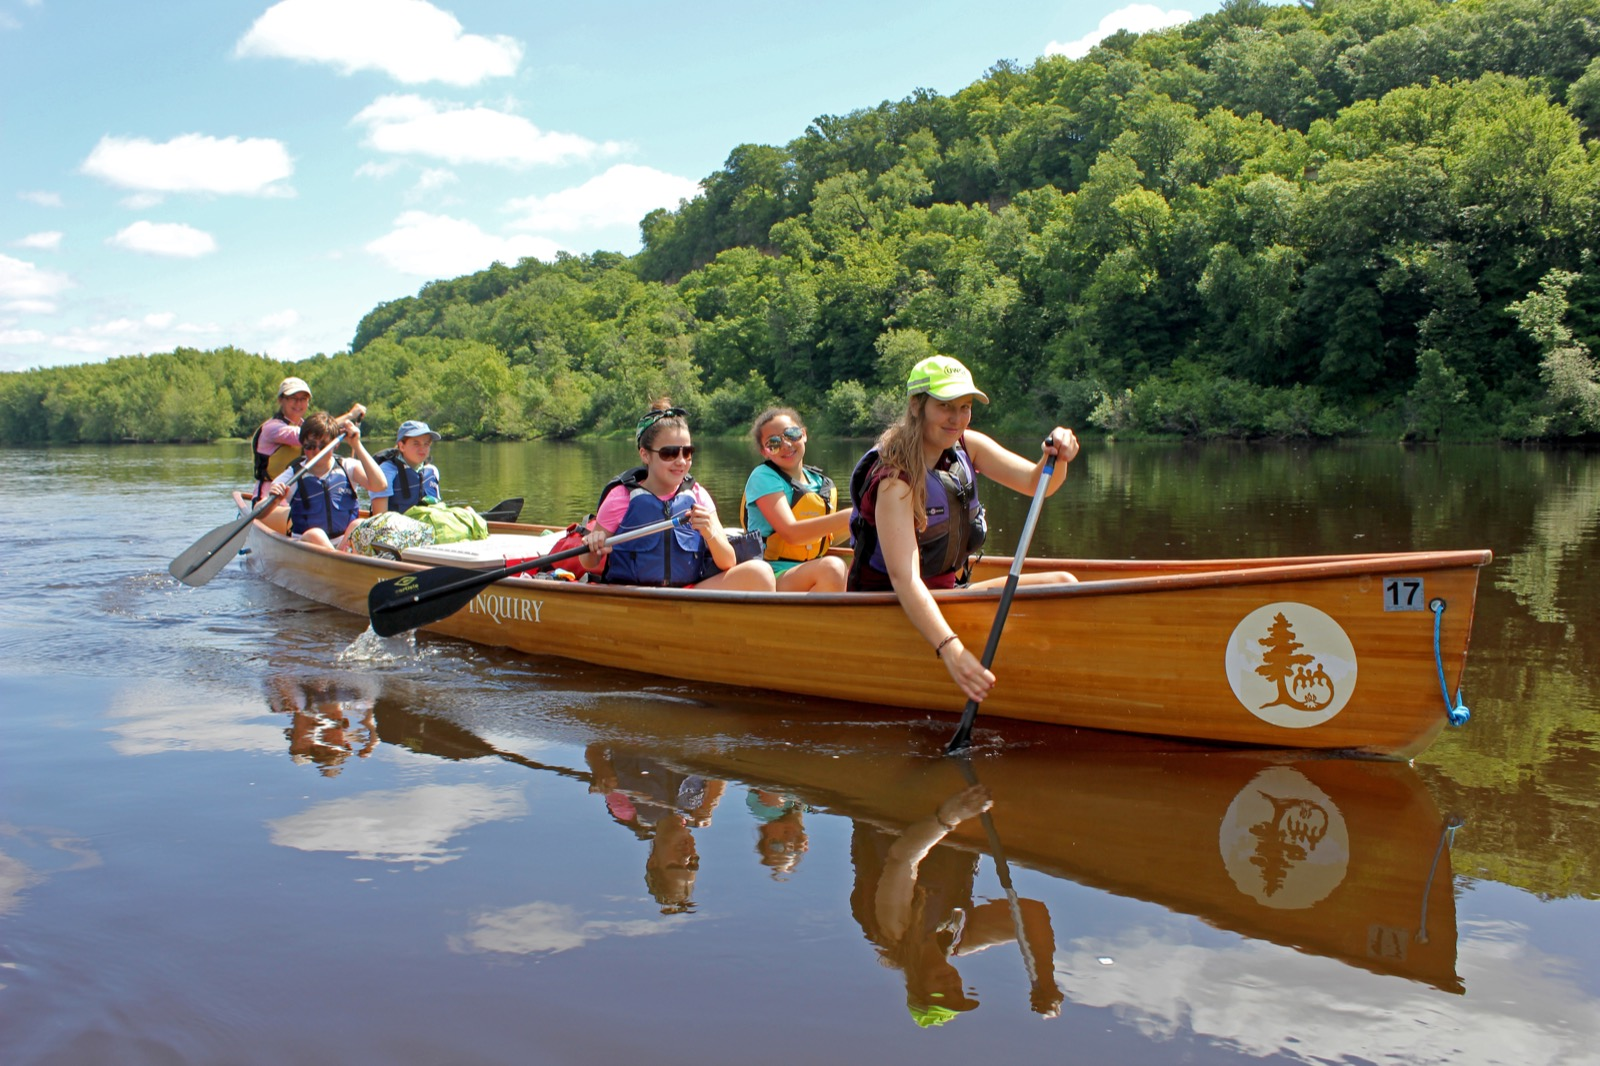 Four girls and two Wilderness Inquiry guides paddle a Voyageur canoe on a glassy St. Croix River on a sunny afternoon.